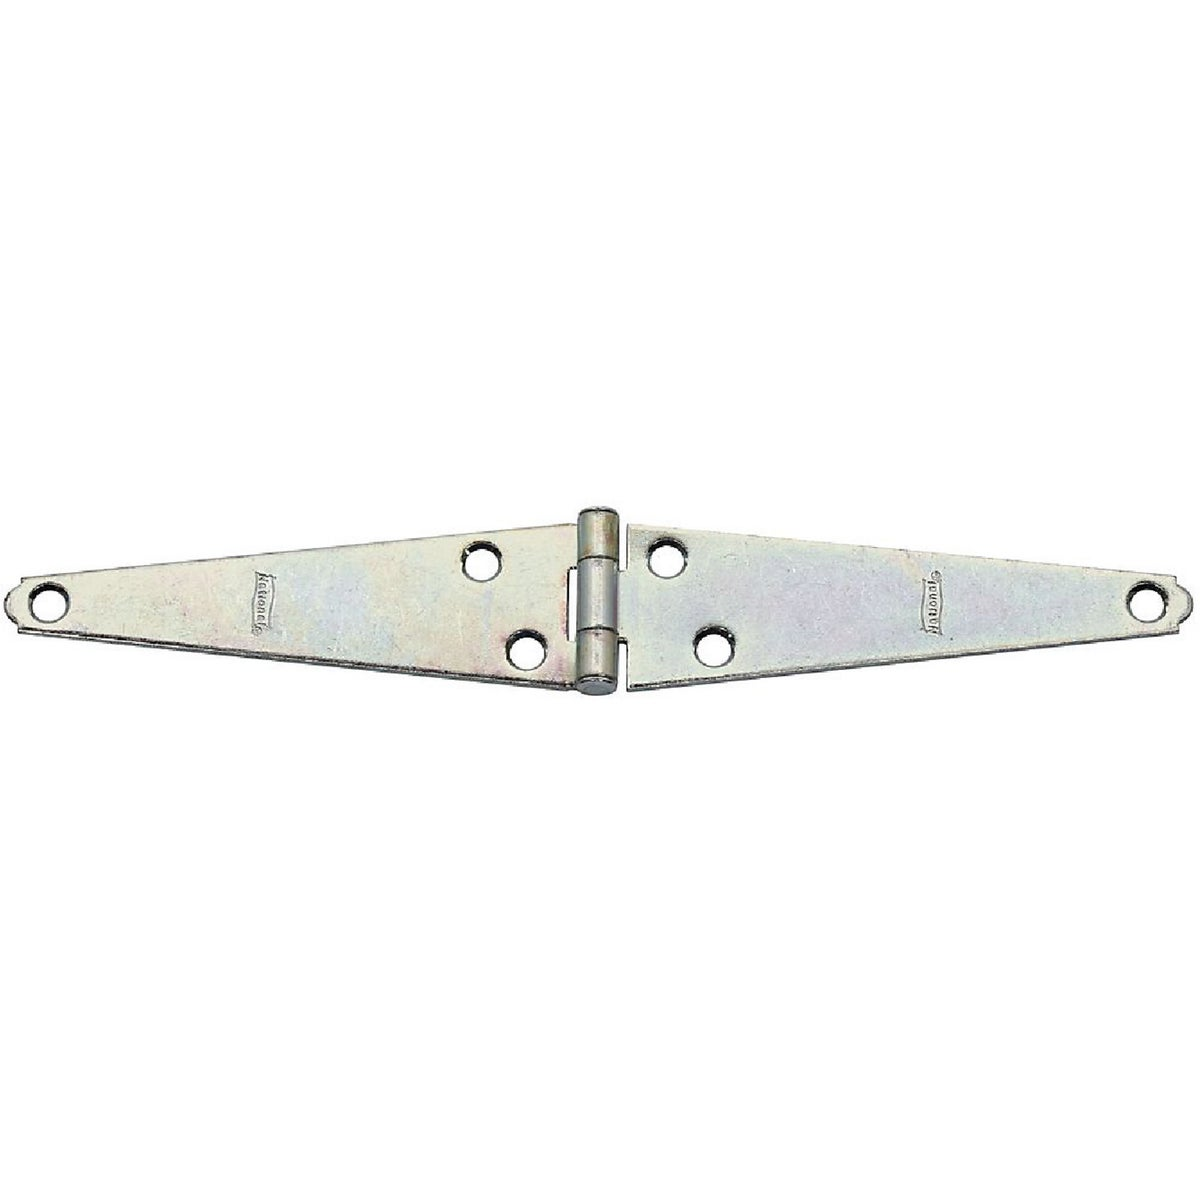 "5"" LIGHT STRAP HINGE - N127597 by National Mfg Co"